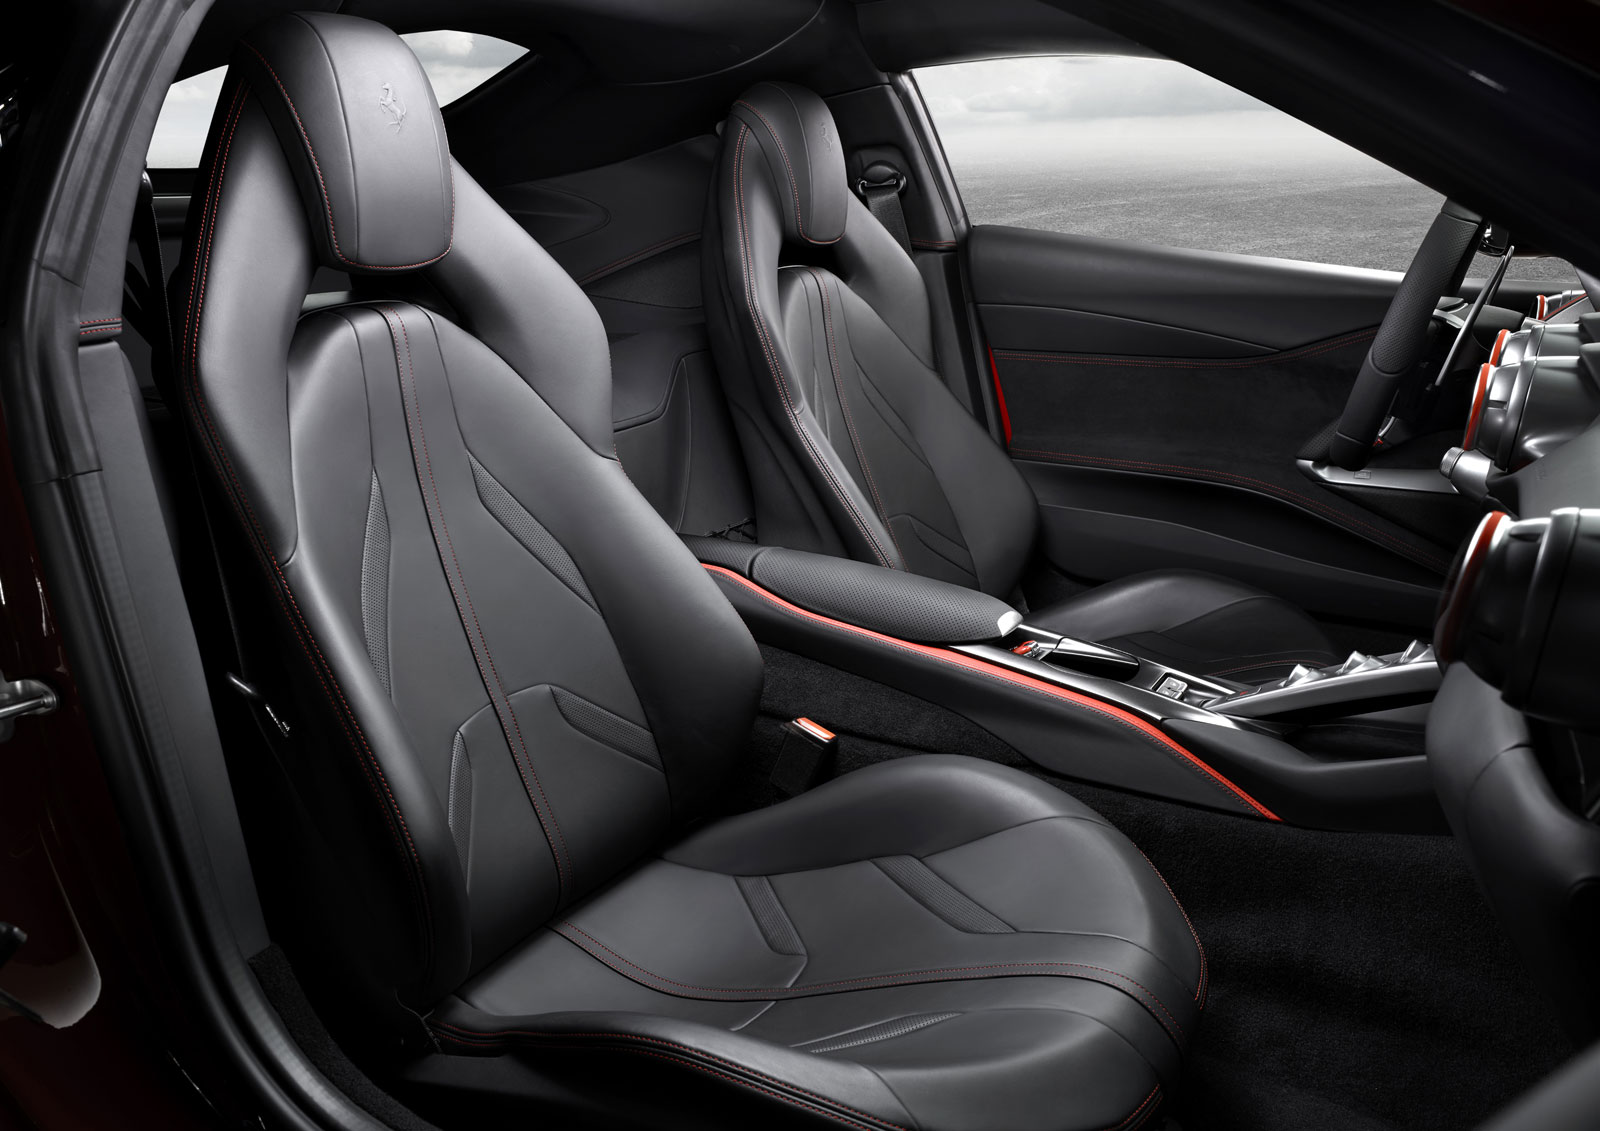 Ferrari 812 Superfast Interior Car Body Design